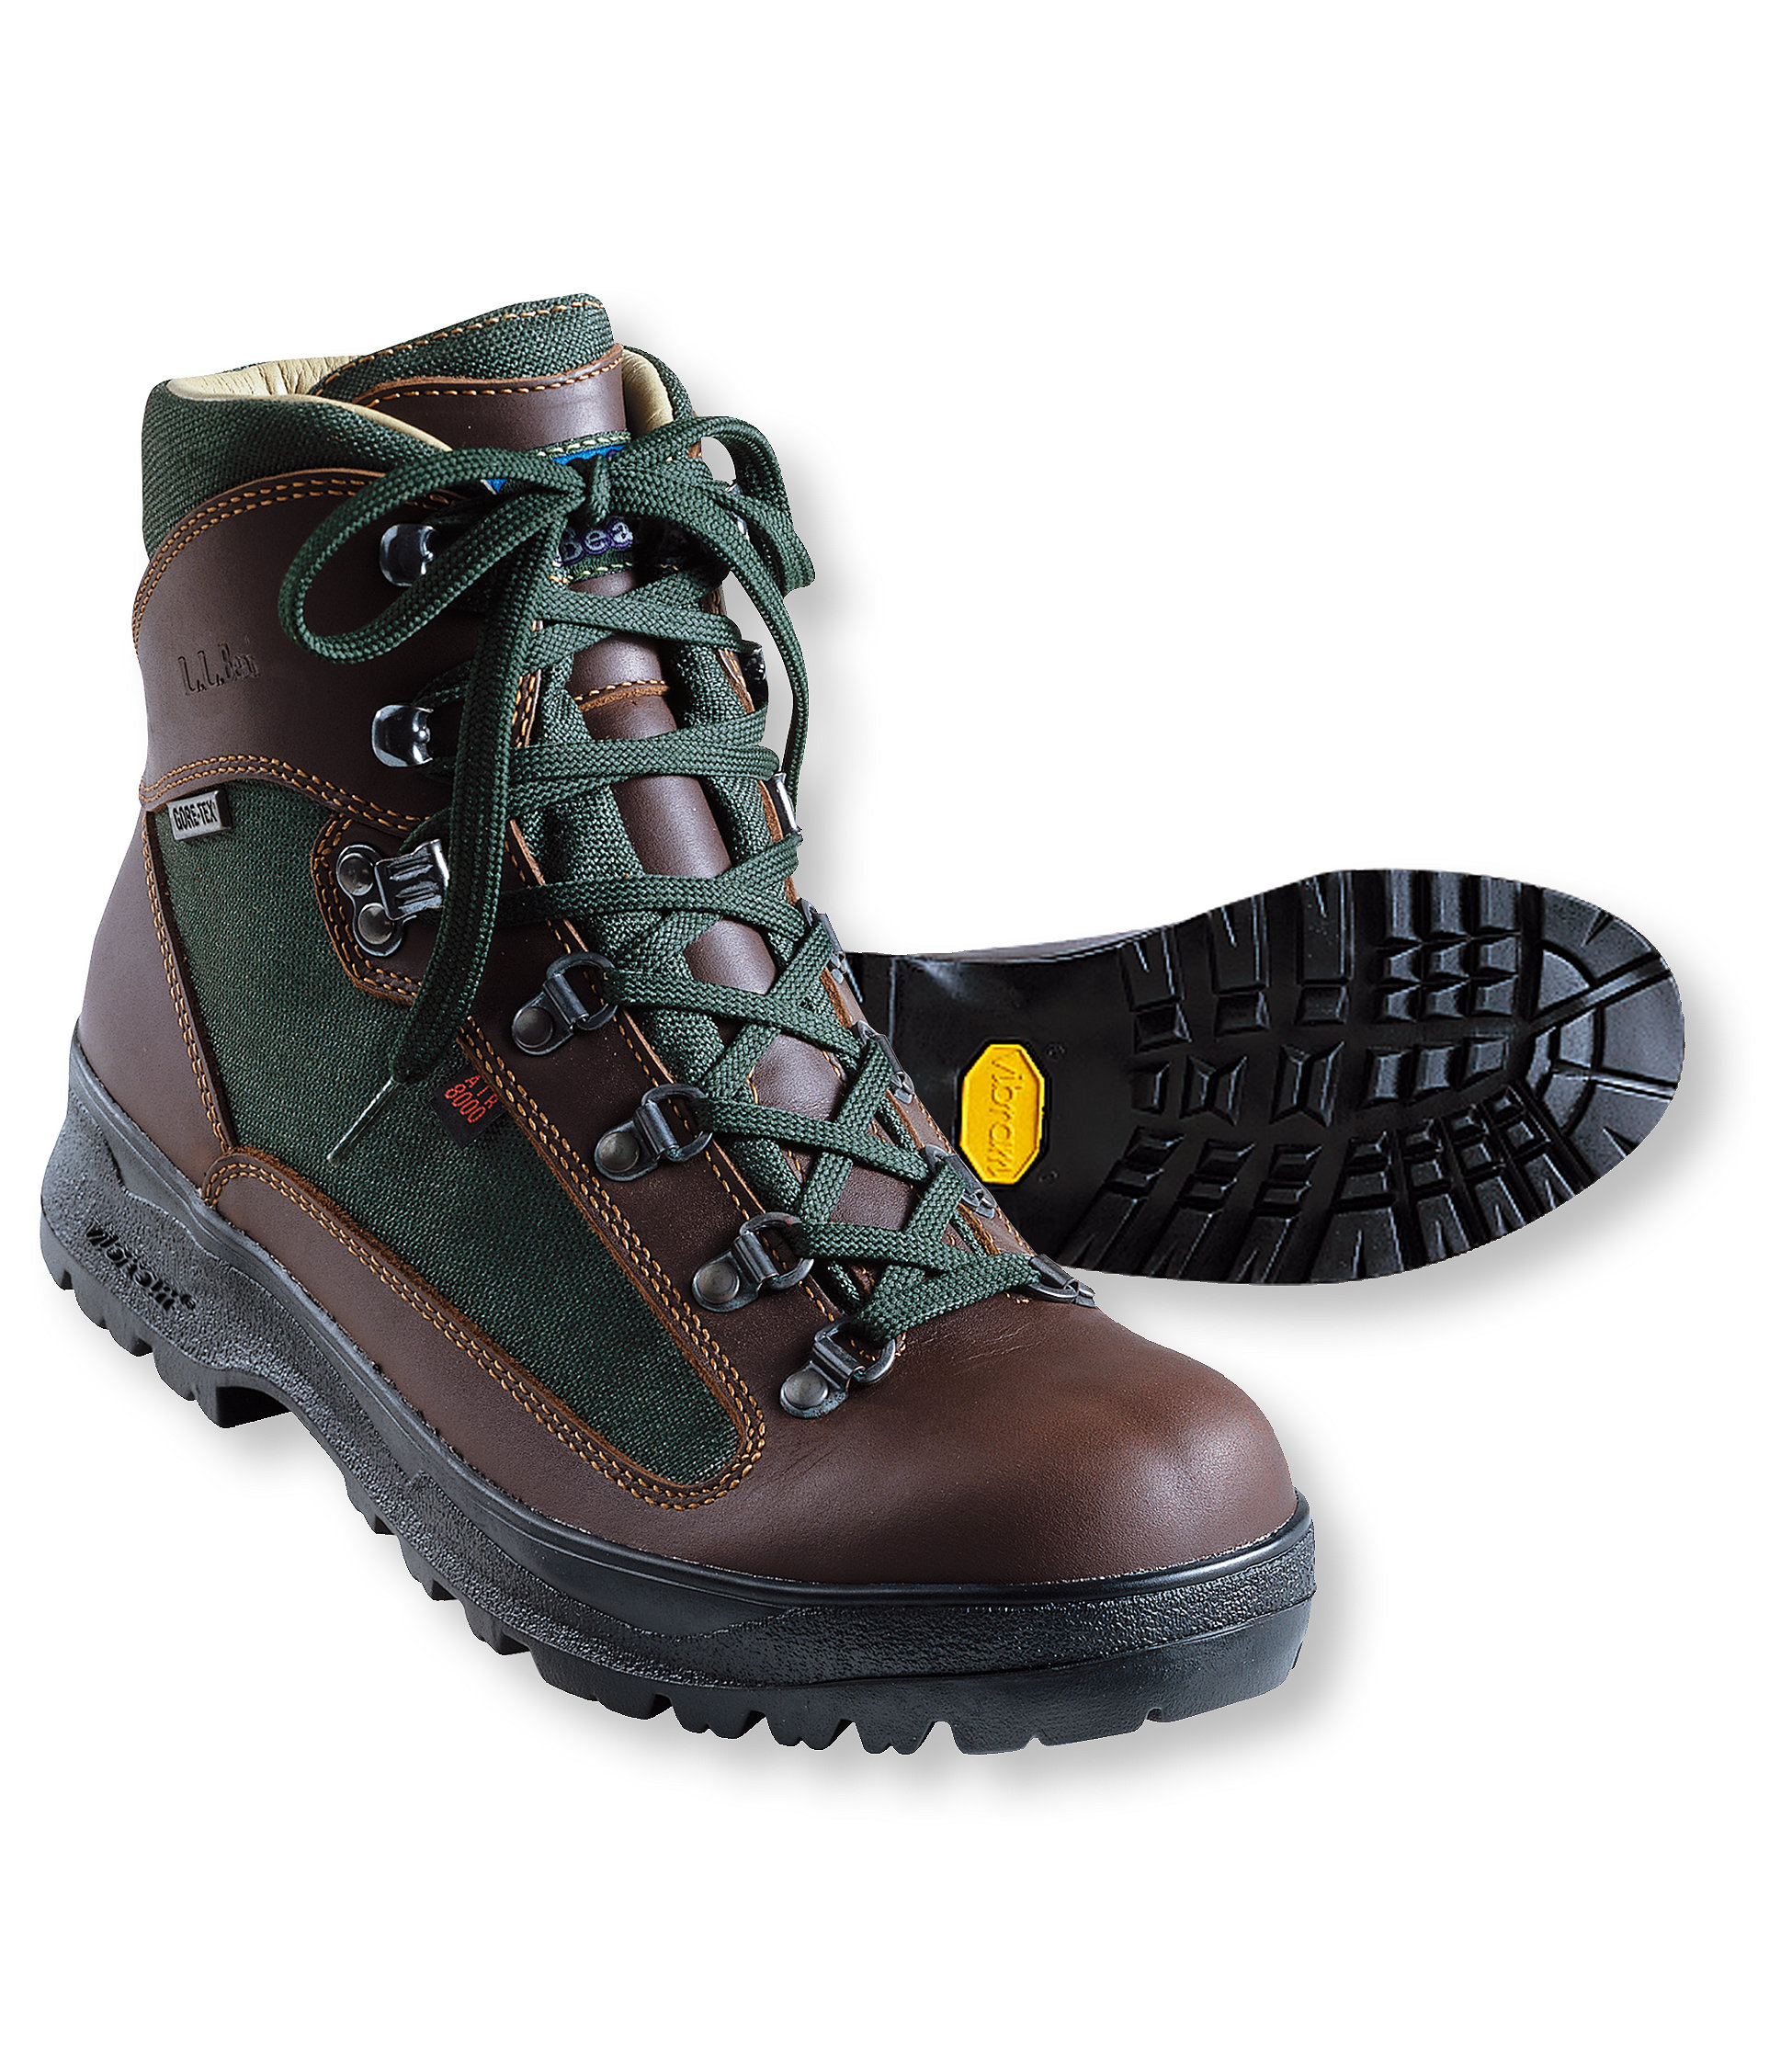 be7c9cd6637 L.L.Bean Gore-Tex Cresta Hikers, Fabric/Leather Reviews - Trailspace